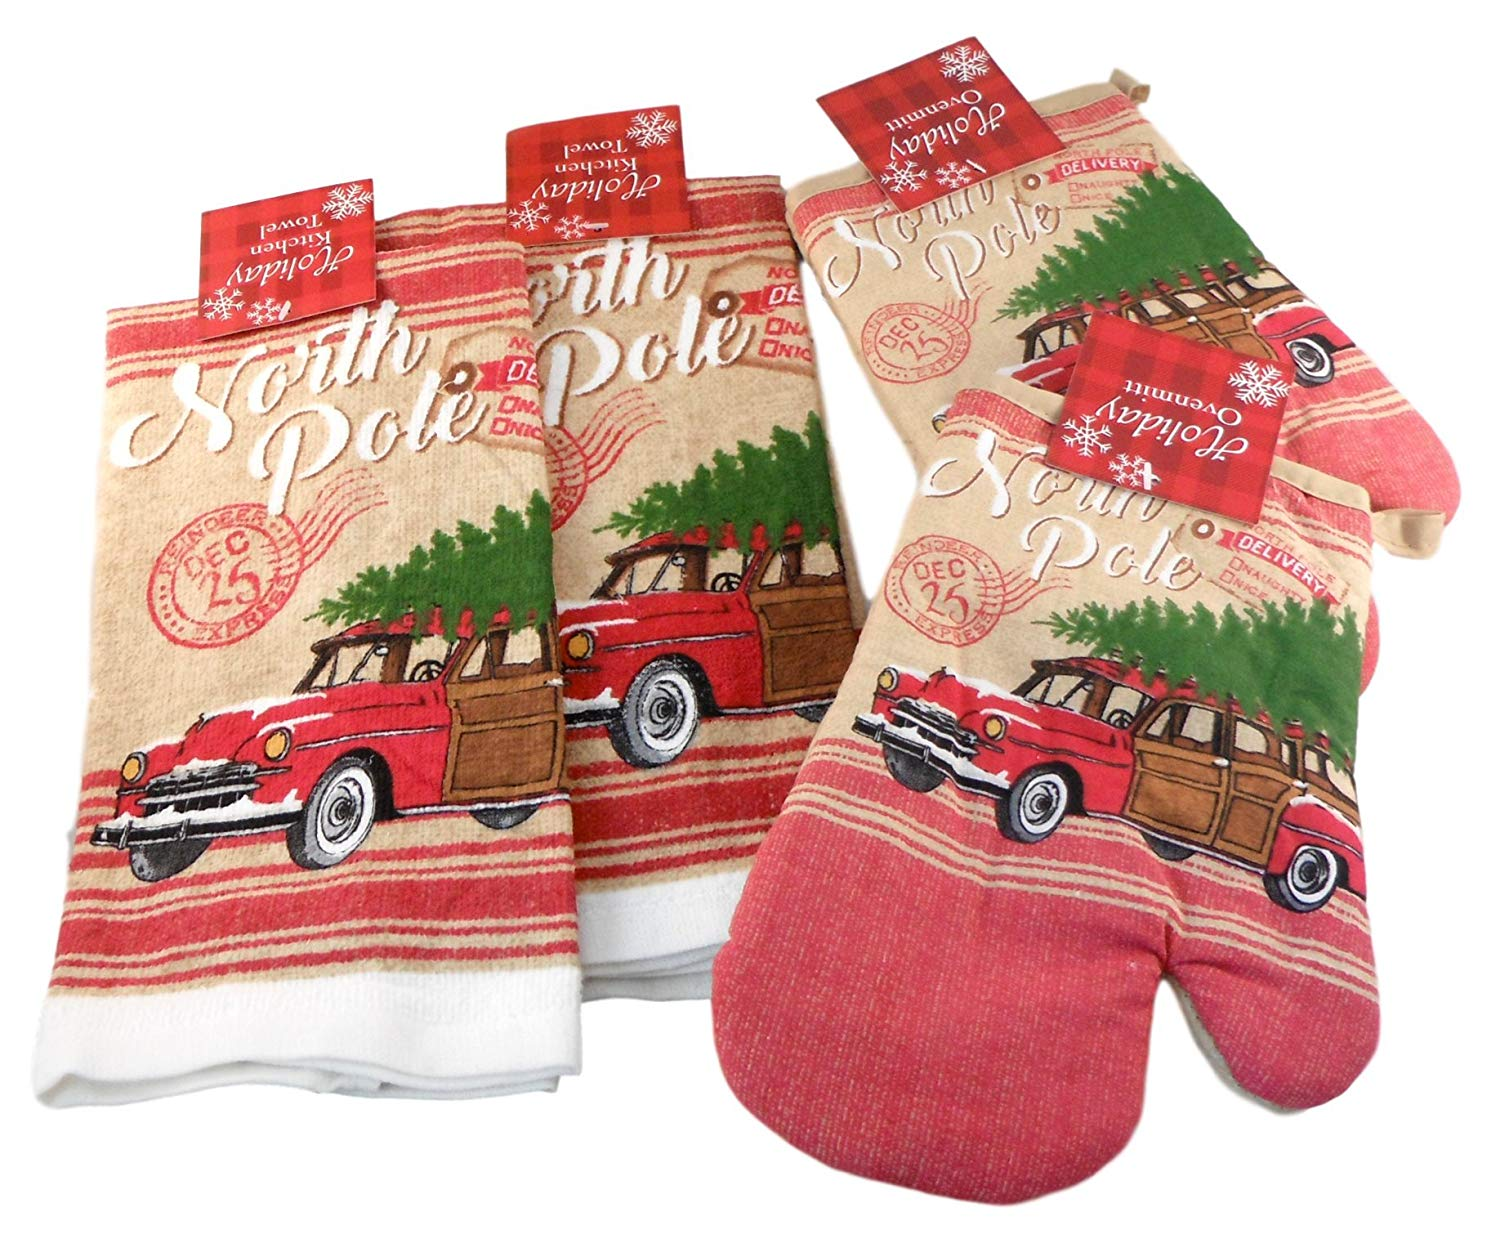 Mainstream Winter Holiday Towels and Oven Mitts - Bundle of 4 Items: 2 Dish Towels and 2 Oven Mitts (North Pole - Old Red Woody and Christmas Tree)